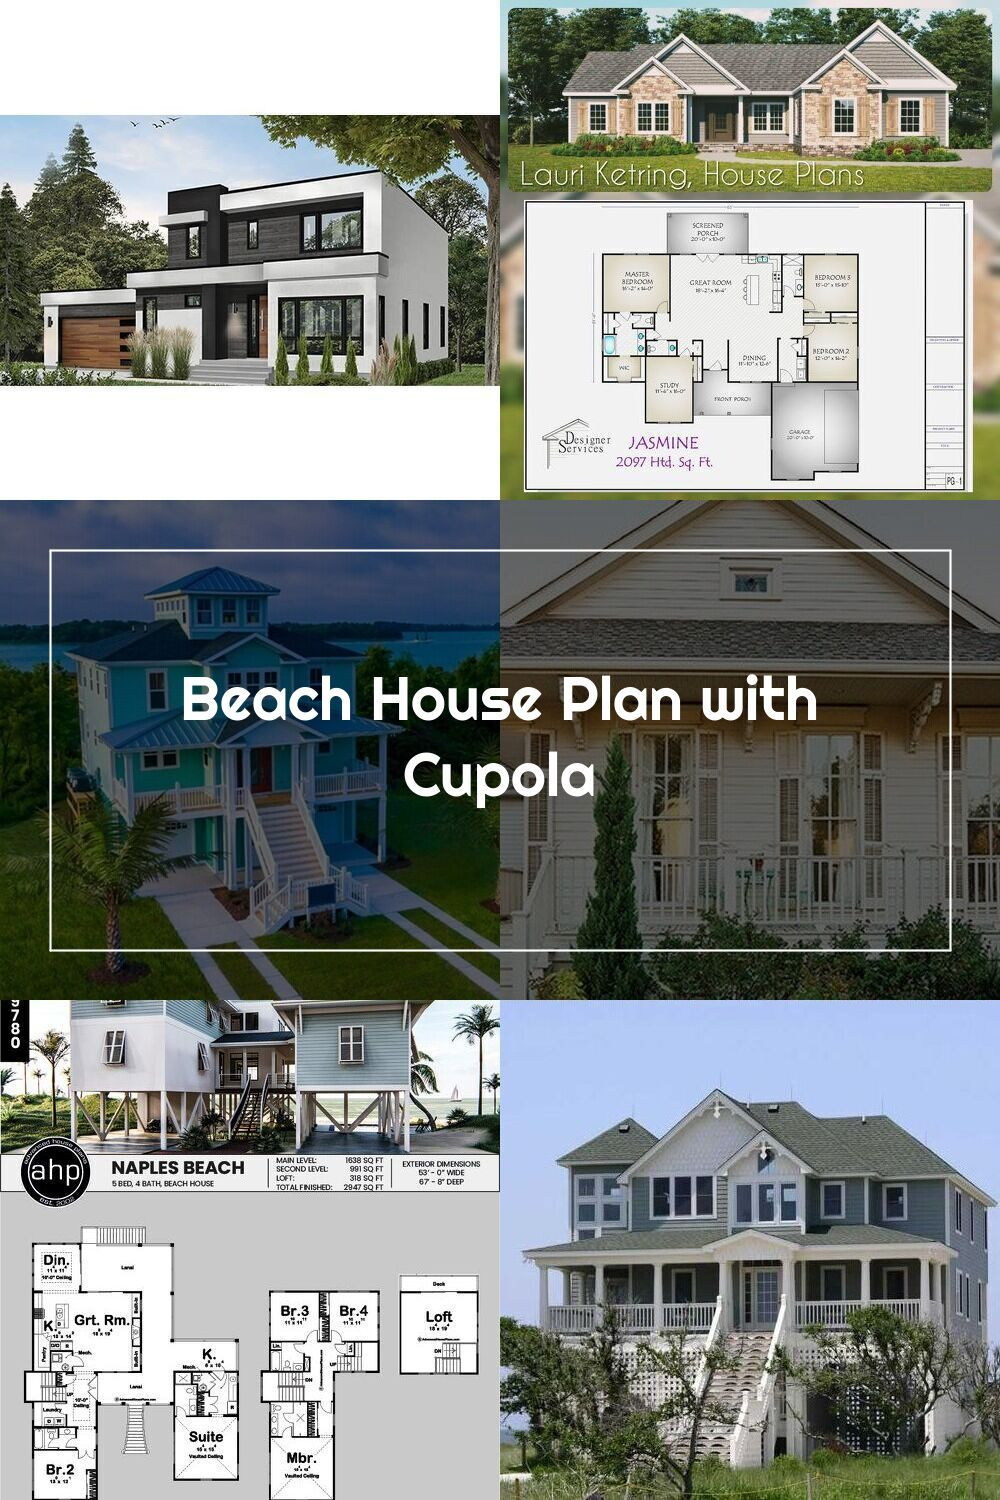 Beach House Plan With Cupola 15033nc Architectural Designs House Plan In 2020 Beach House Plan Beach House Plans House Plans